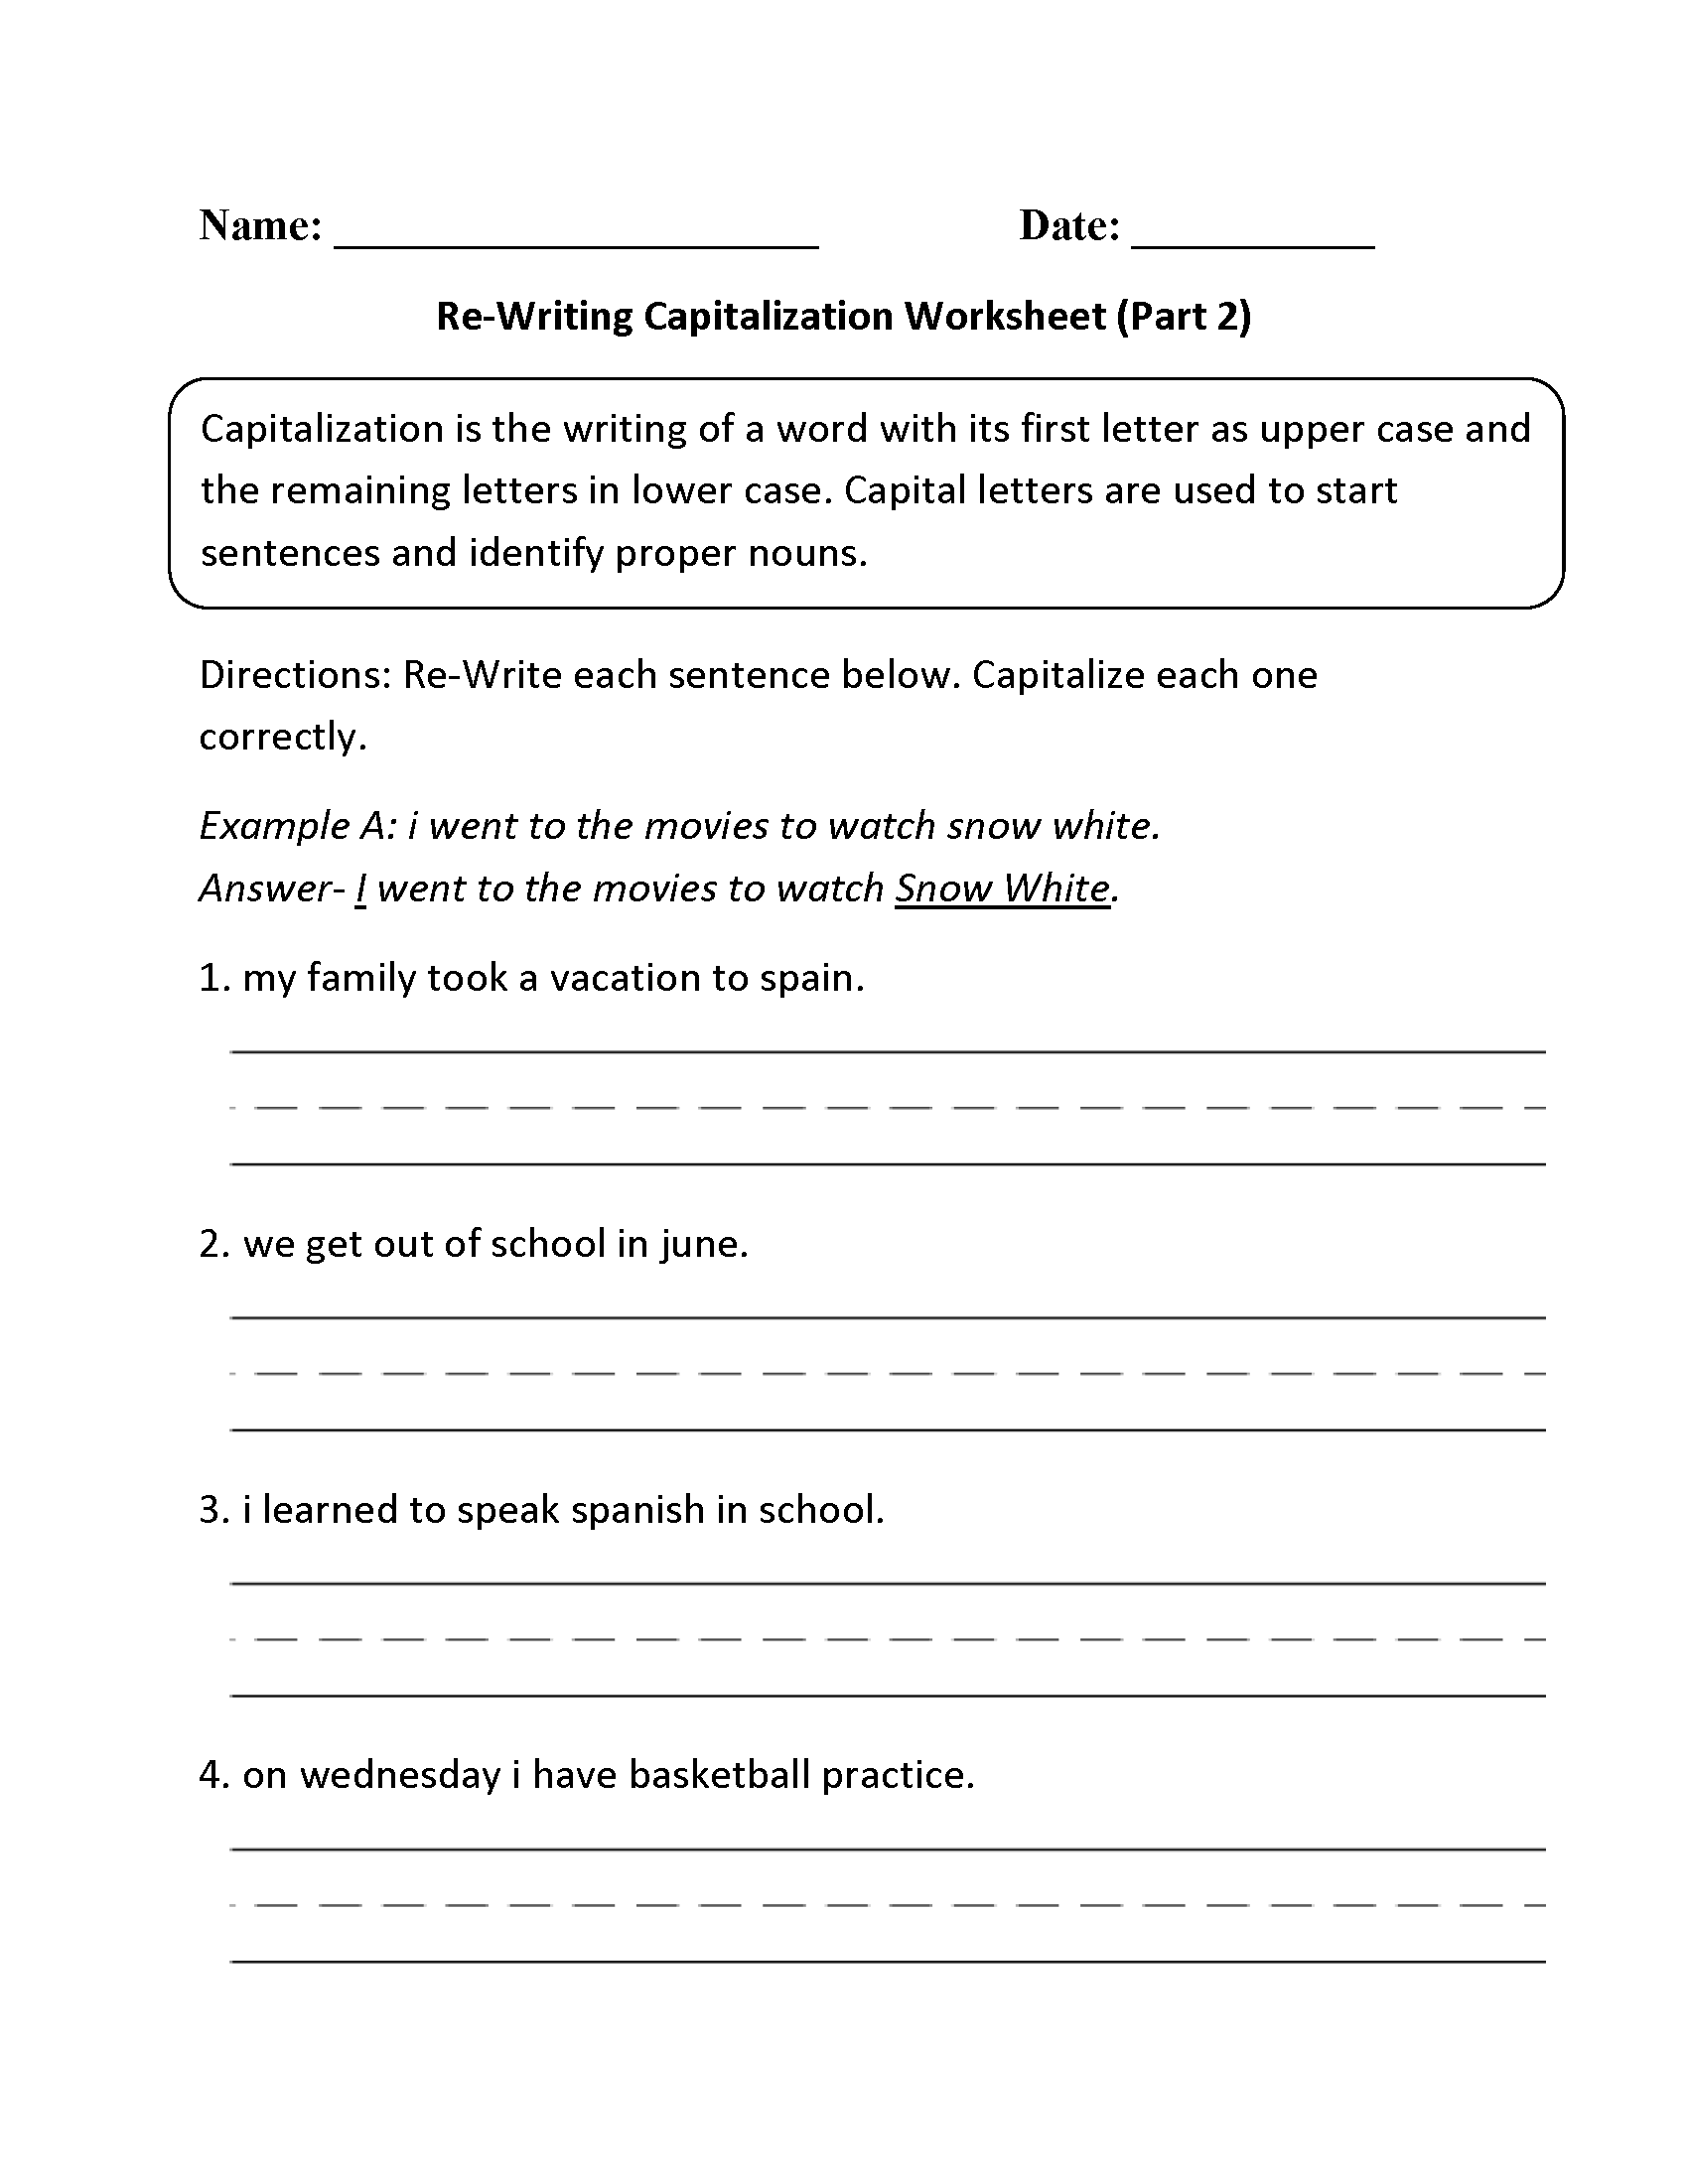 Printables Free Capitalization Worksheets englishlinx com capitalization worksheets re writing worksheet part 2